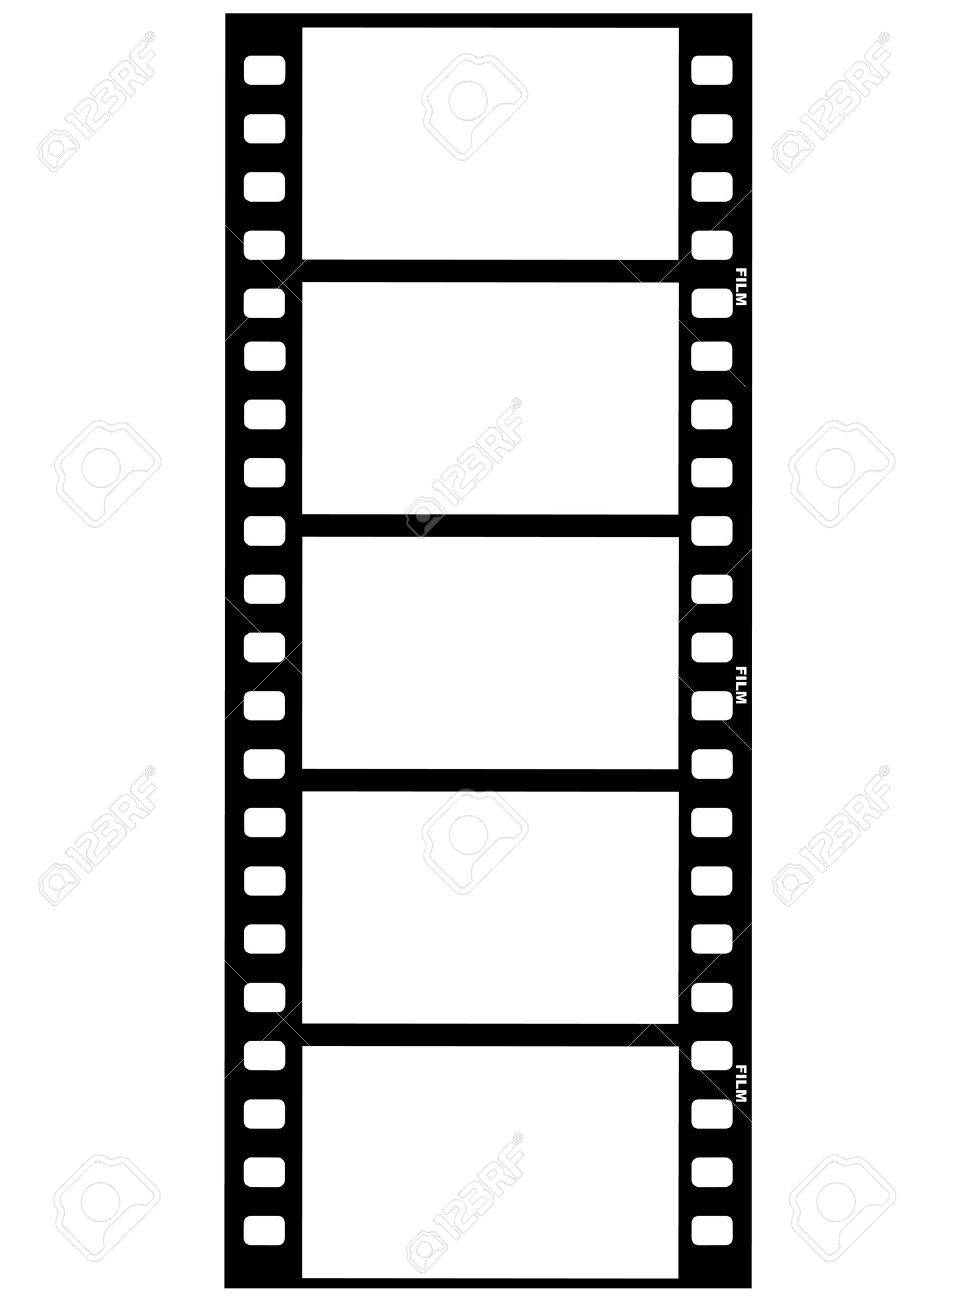 outline illustration of film strip royalty free cliparts vectors rh 123rf com film strip clipart border film strip clip art free